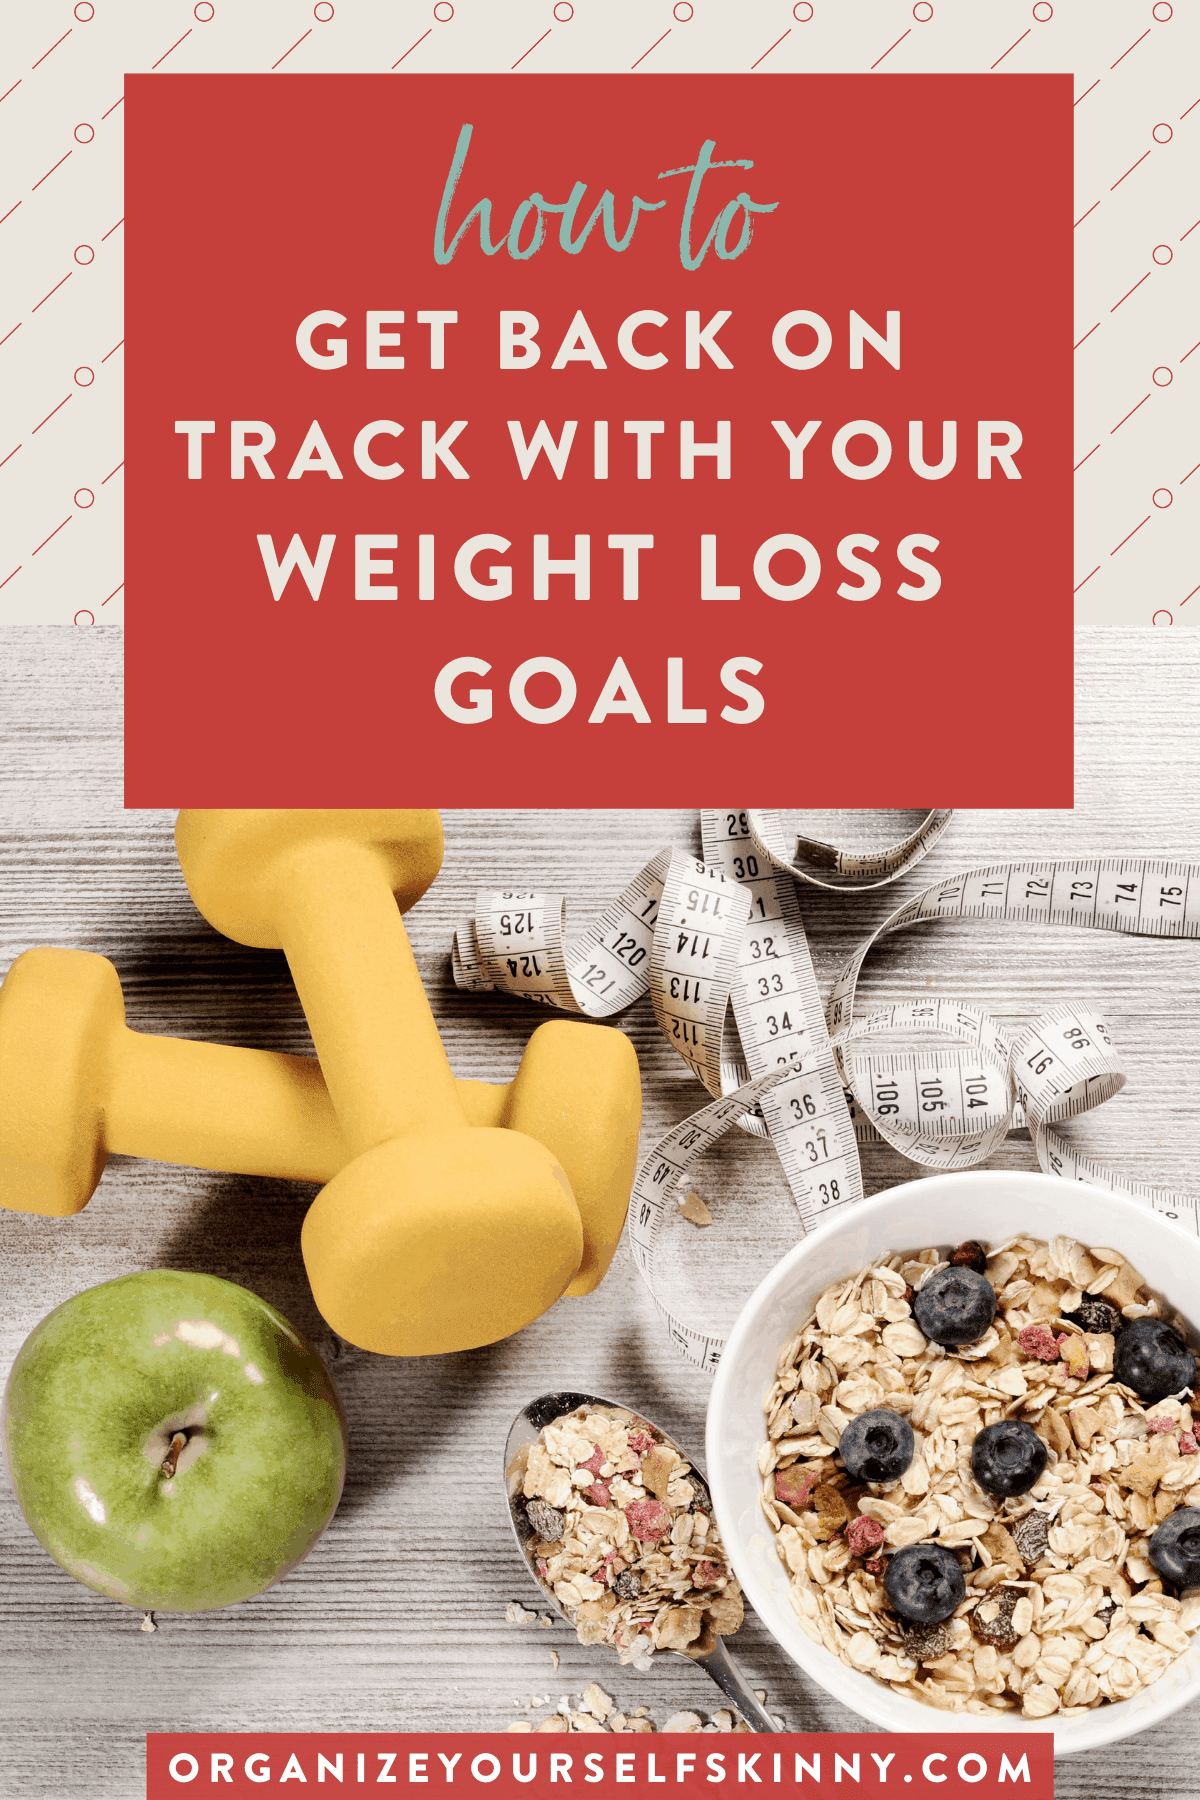 how-to-get-back-on-track-with-your-weight-loss-goals